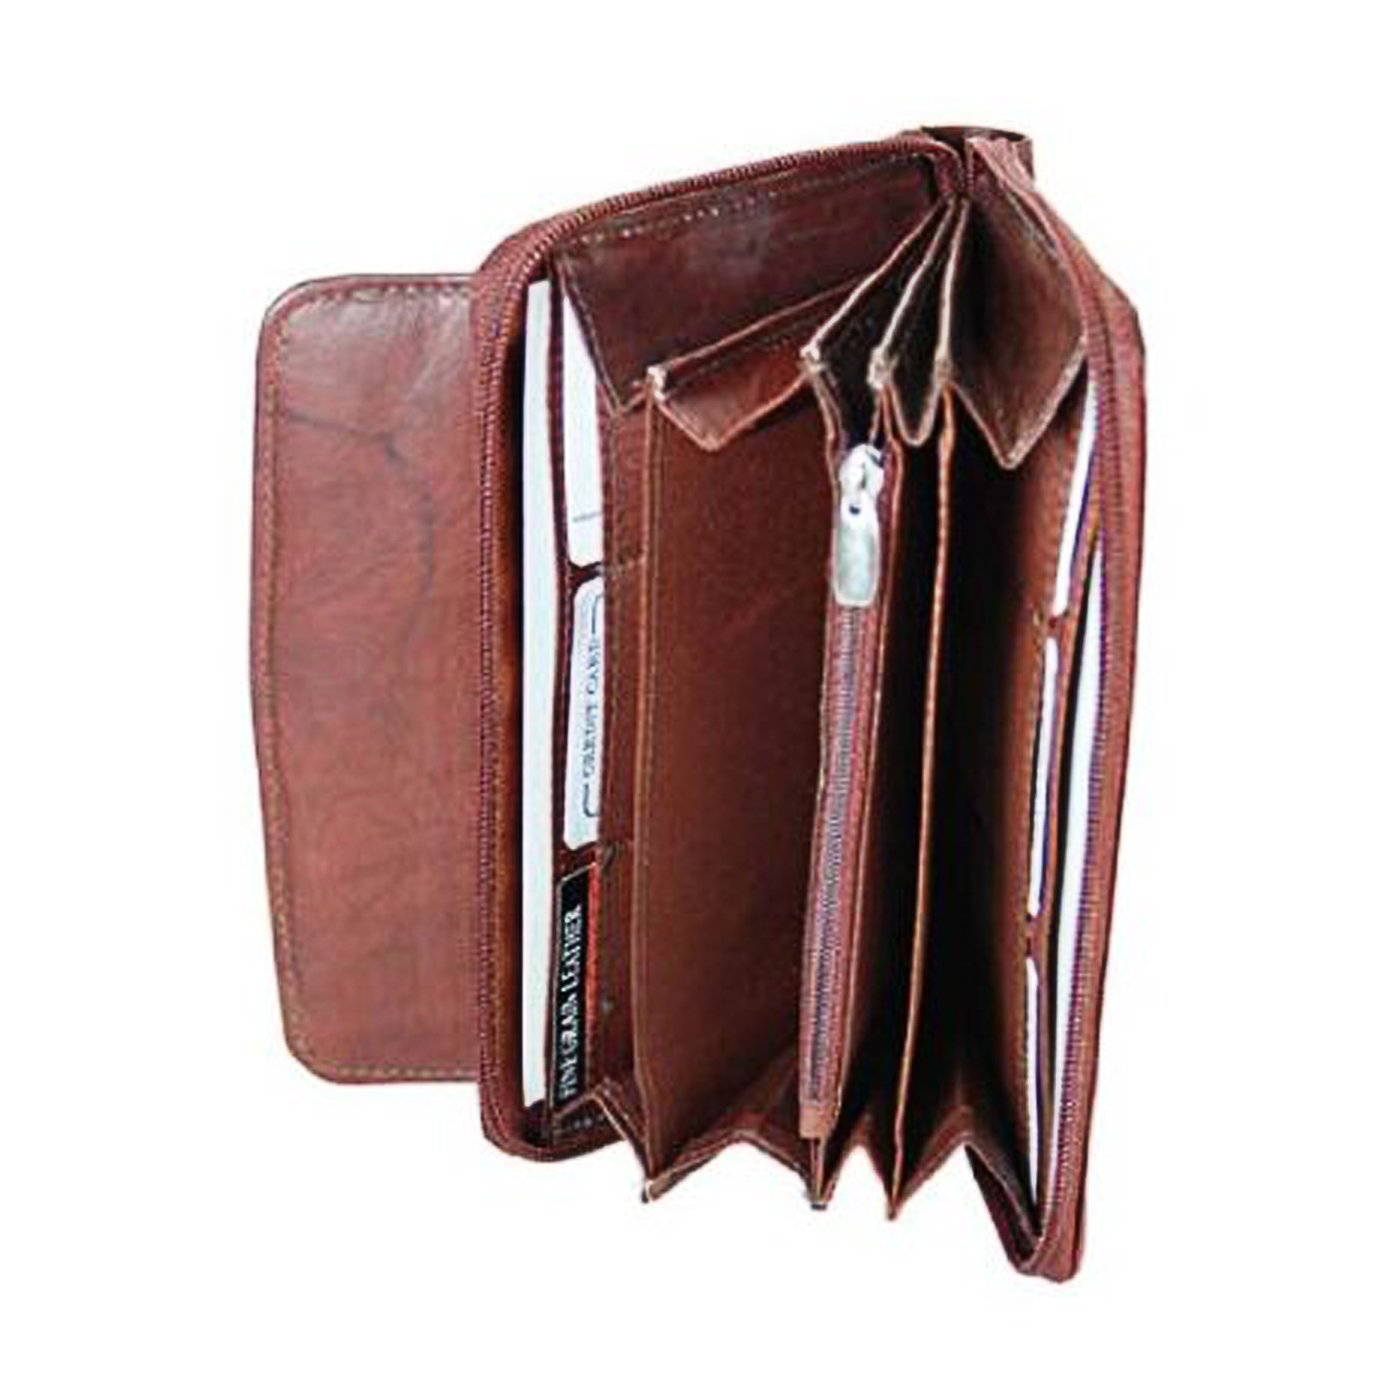 Brand New Leather Ladies Clutch Wallet Purse #4675CF